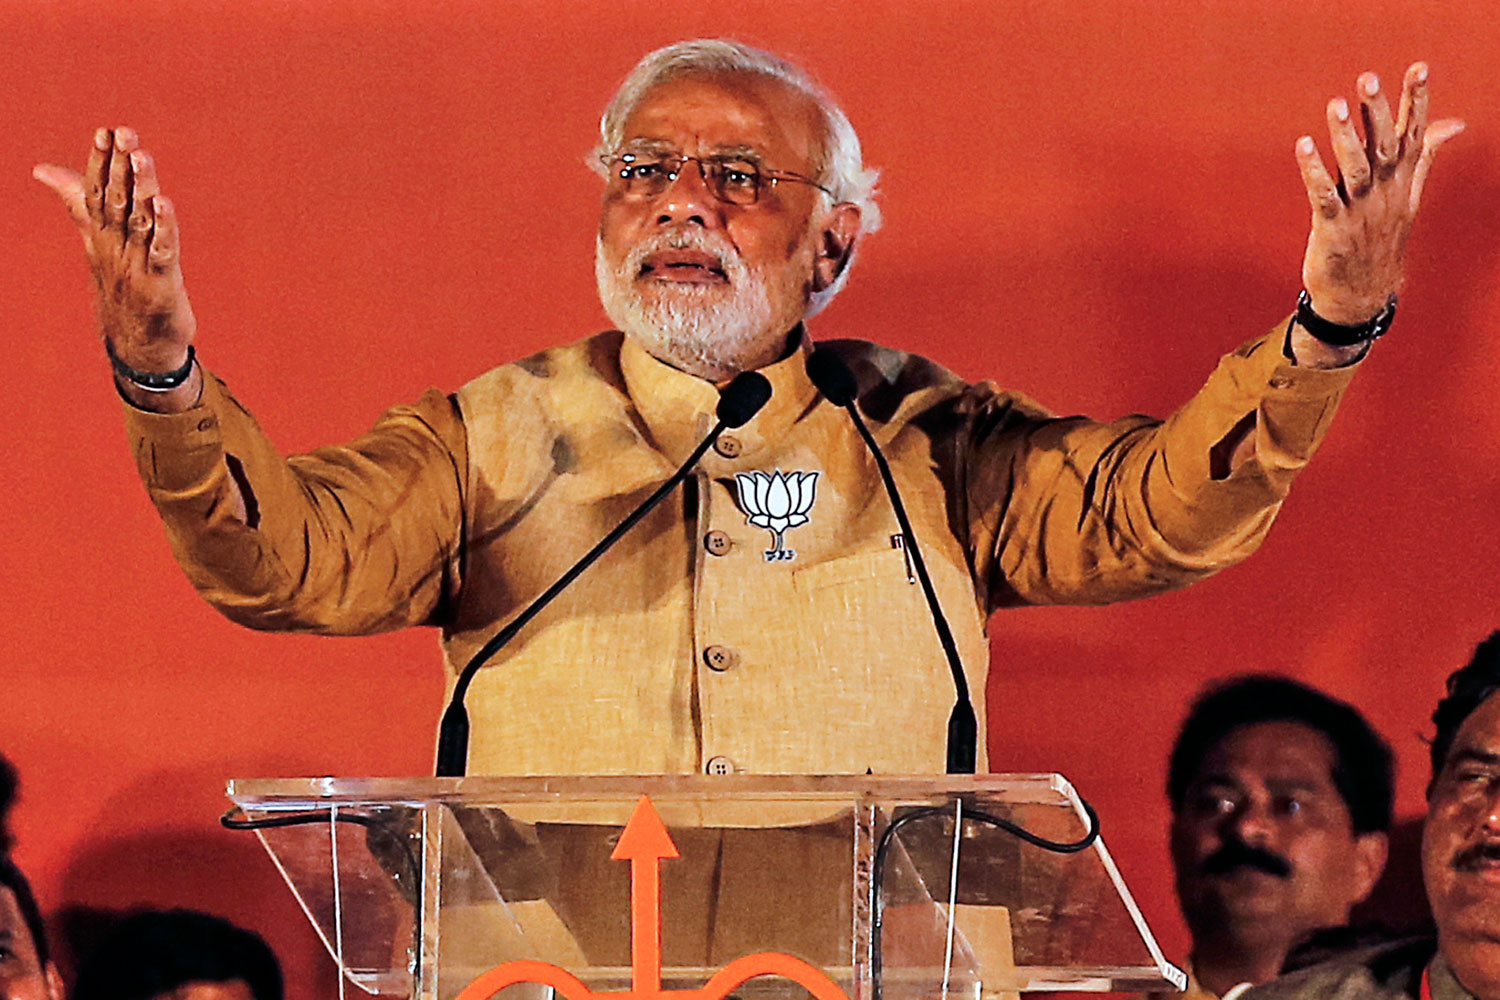 Hindu nationalist Narendra Modi, prime ministerial candidate for the main opposition Bharatiya Janata Party (BJP), gestures as he addresses an election campaign rally in Mumbai April 21, 2014.